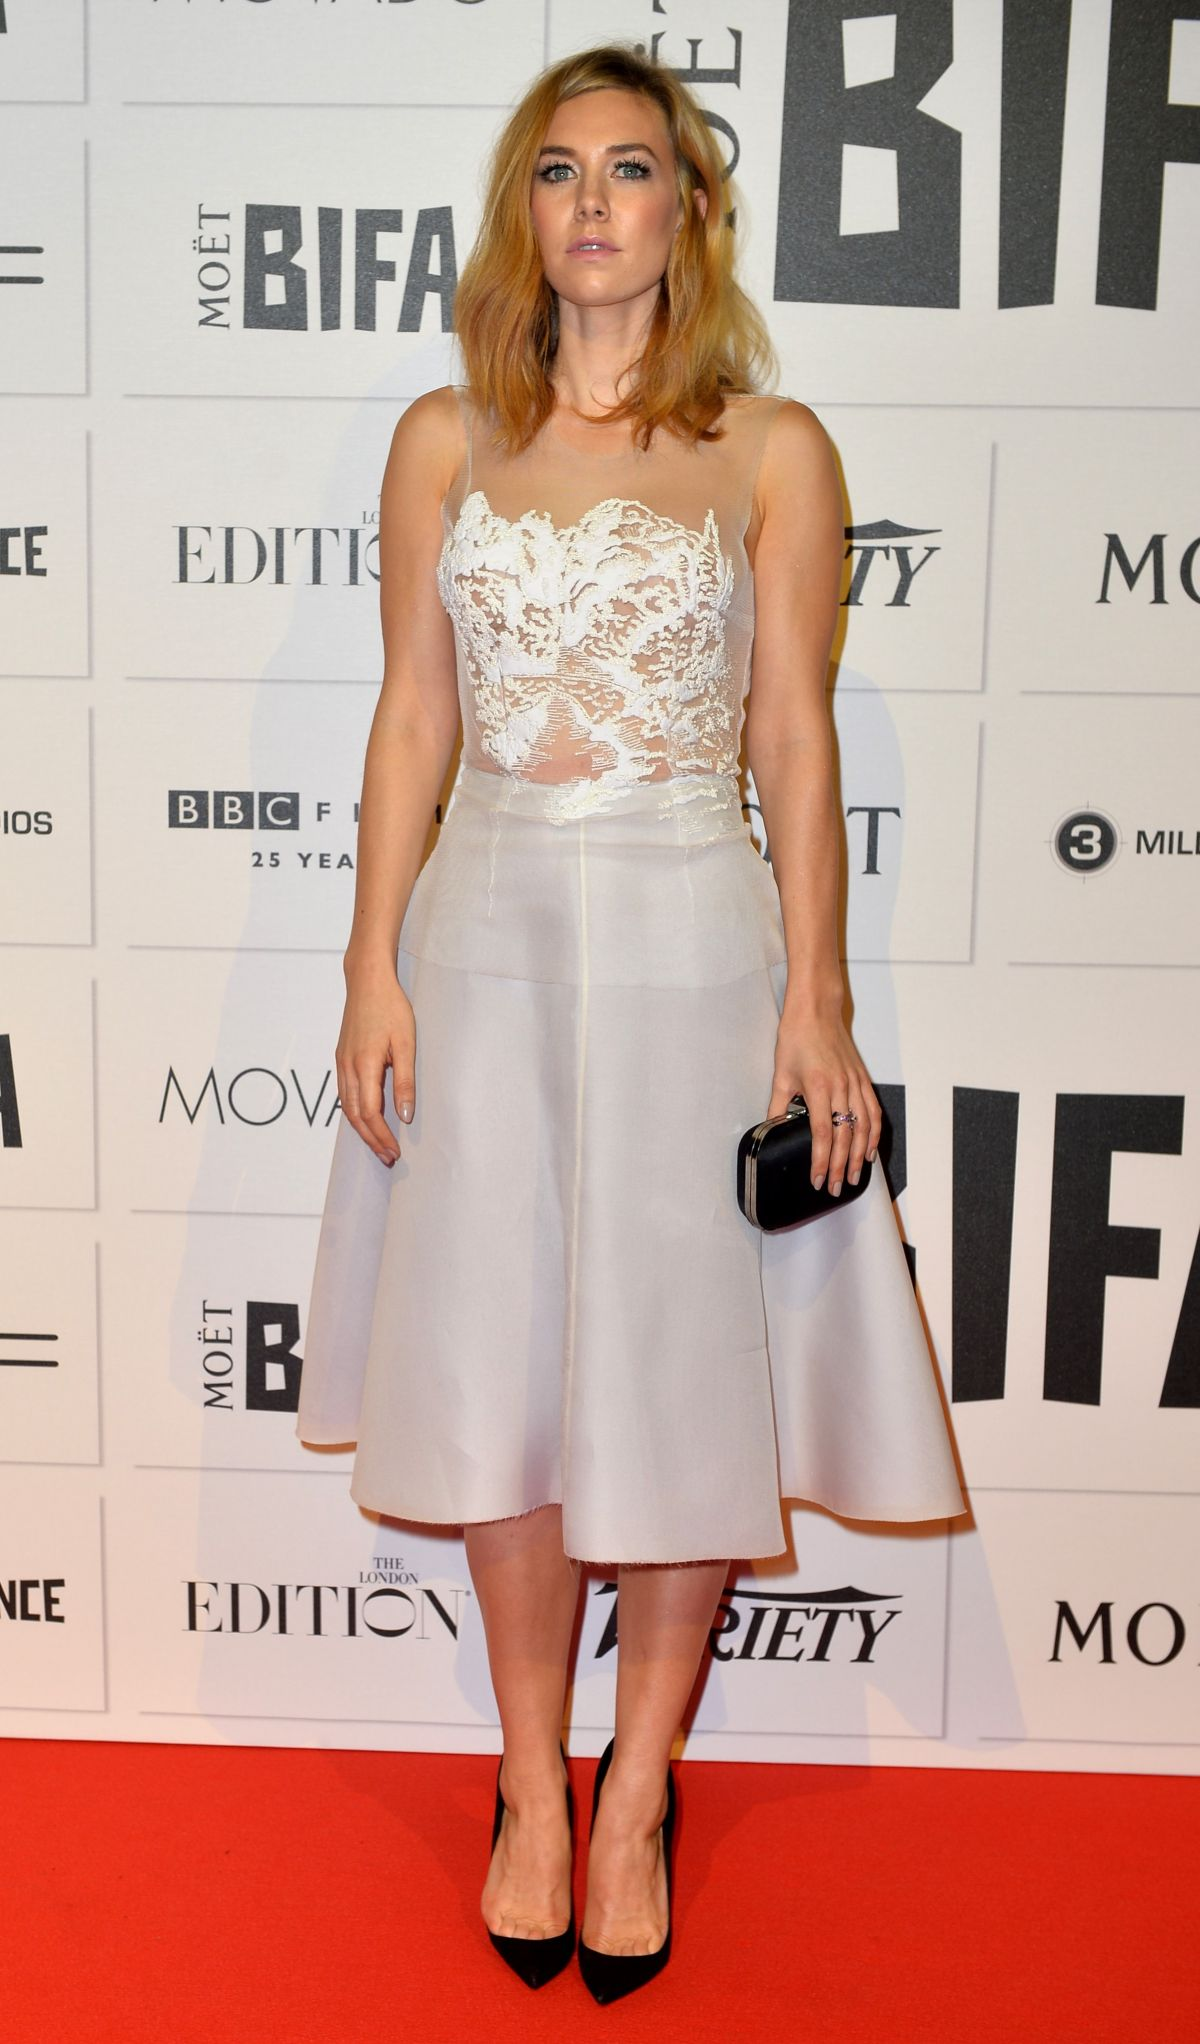 VANESSA KIRBY at Moet British Independent Film Awards 2015 in London 12/06/2015